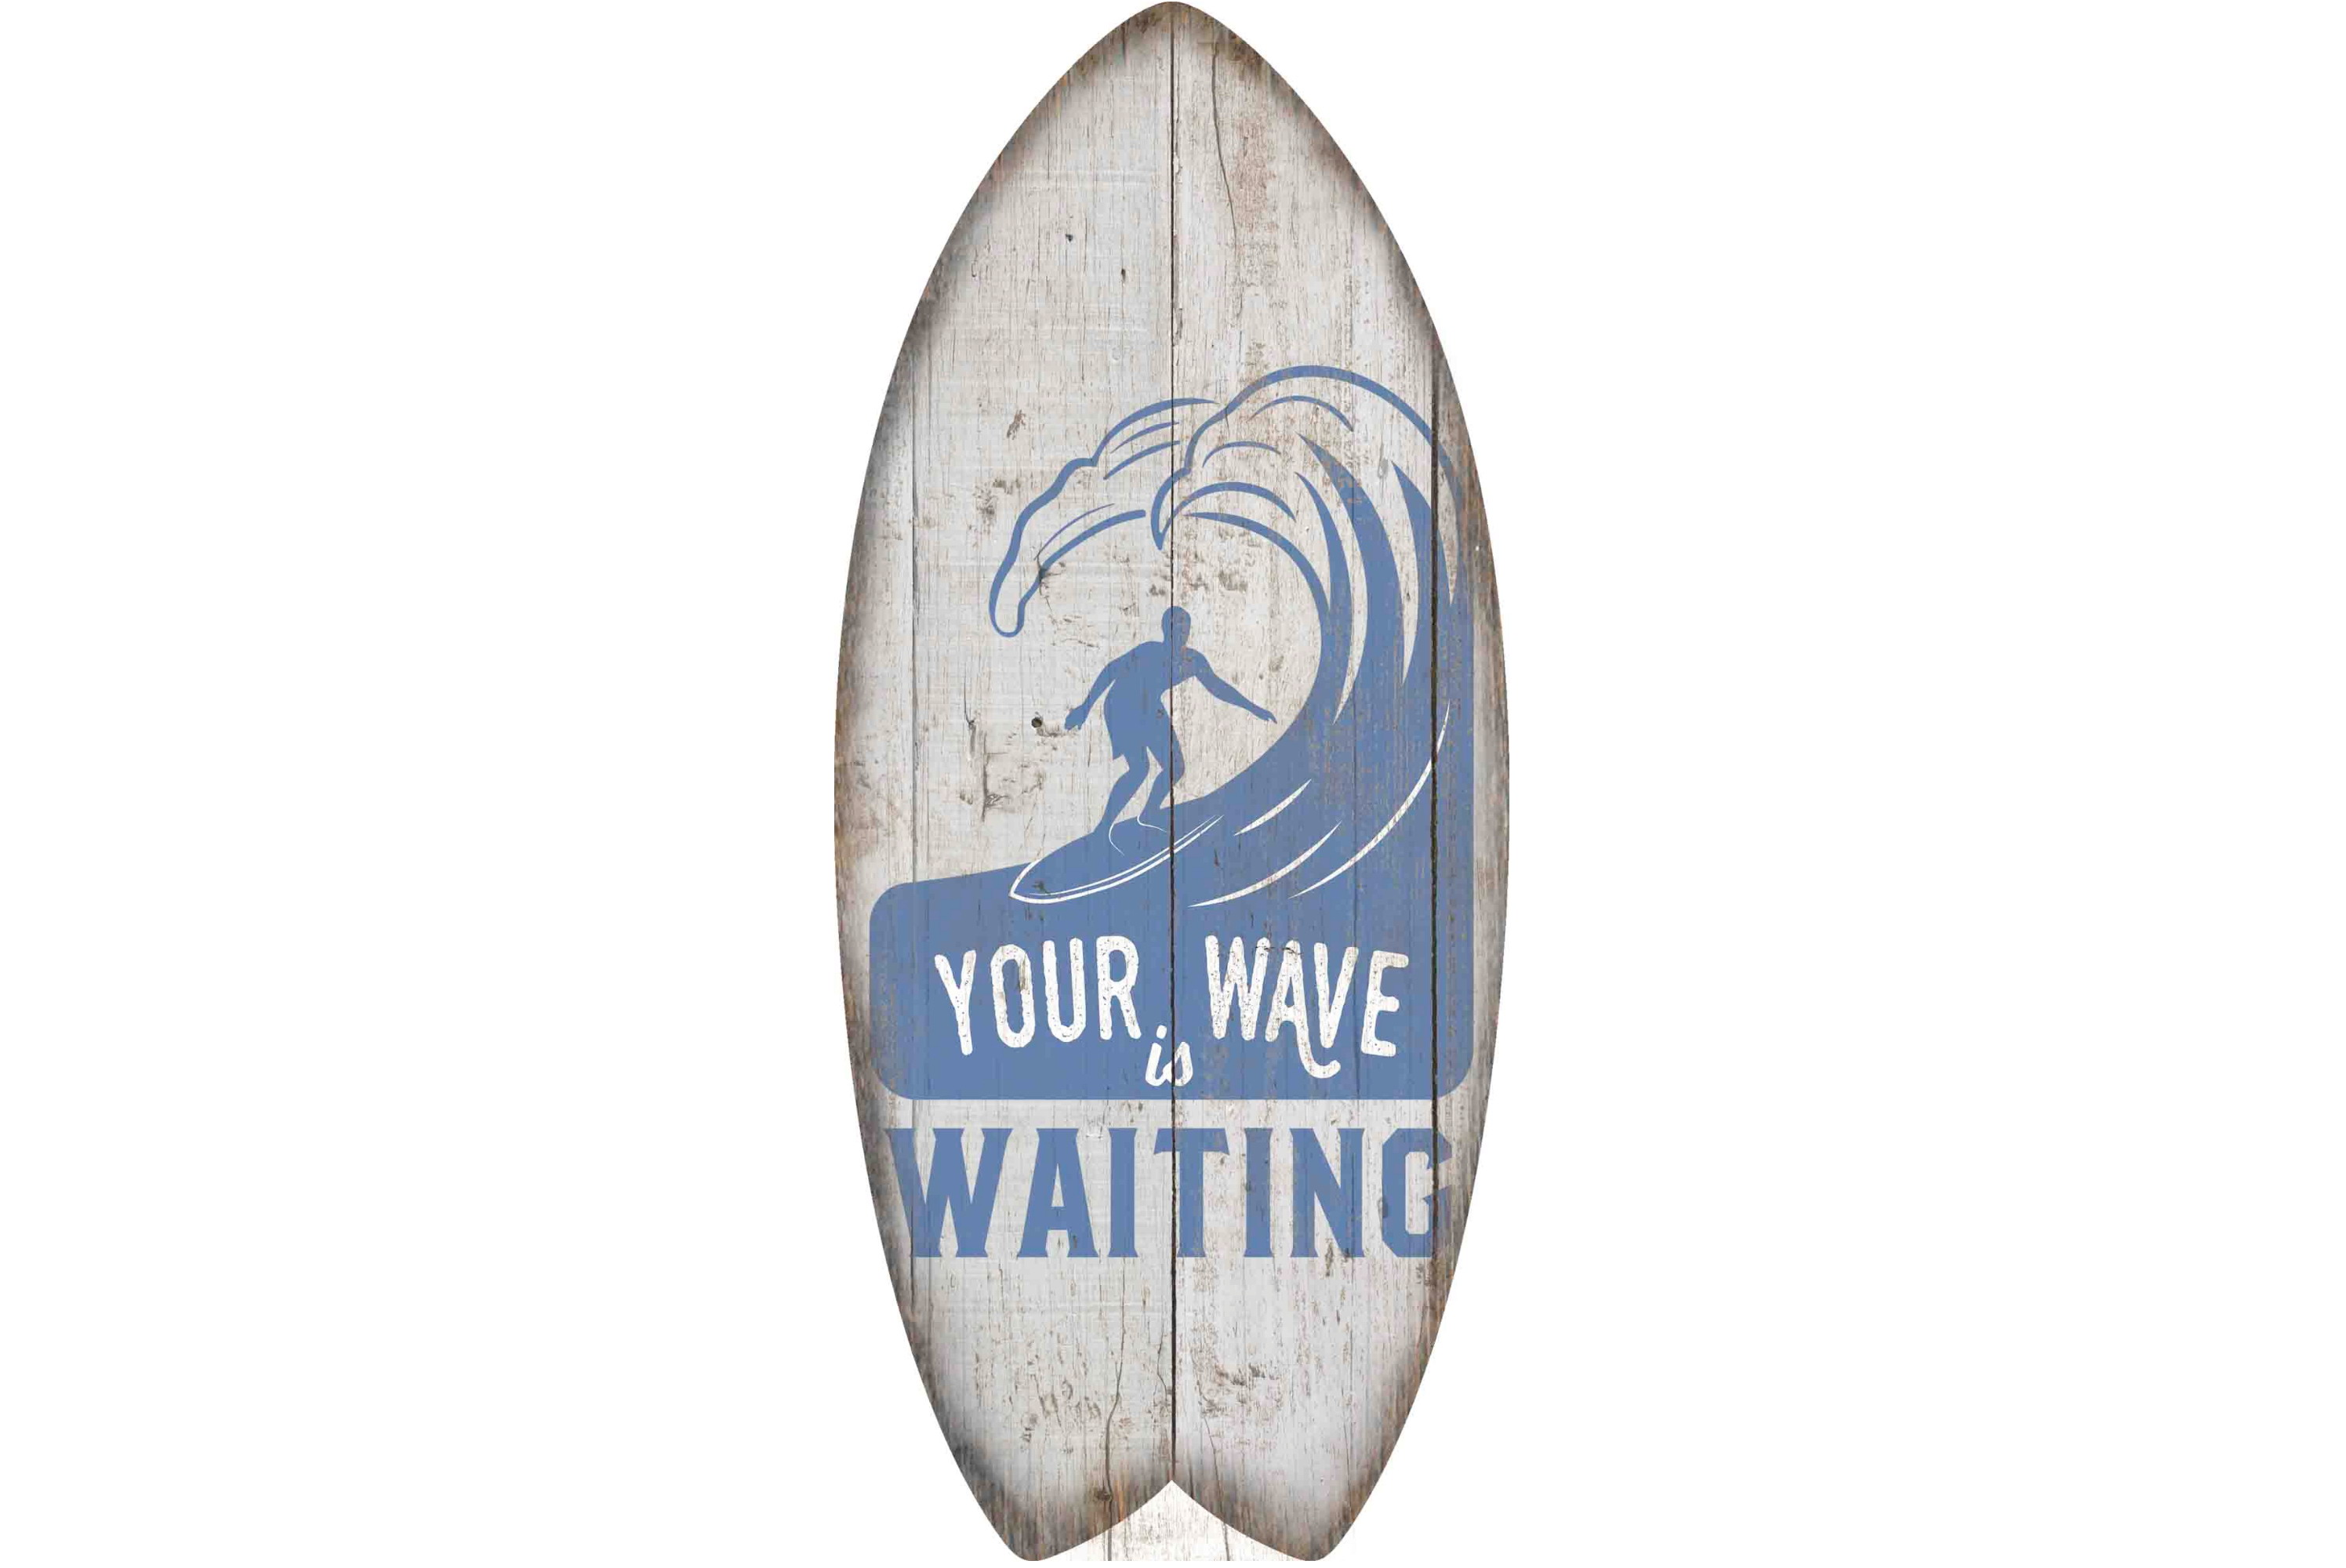 30 x 13cm Wooden Surfboard Your Wave Design